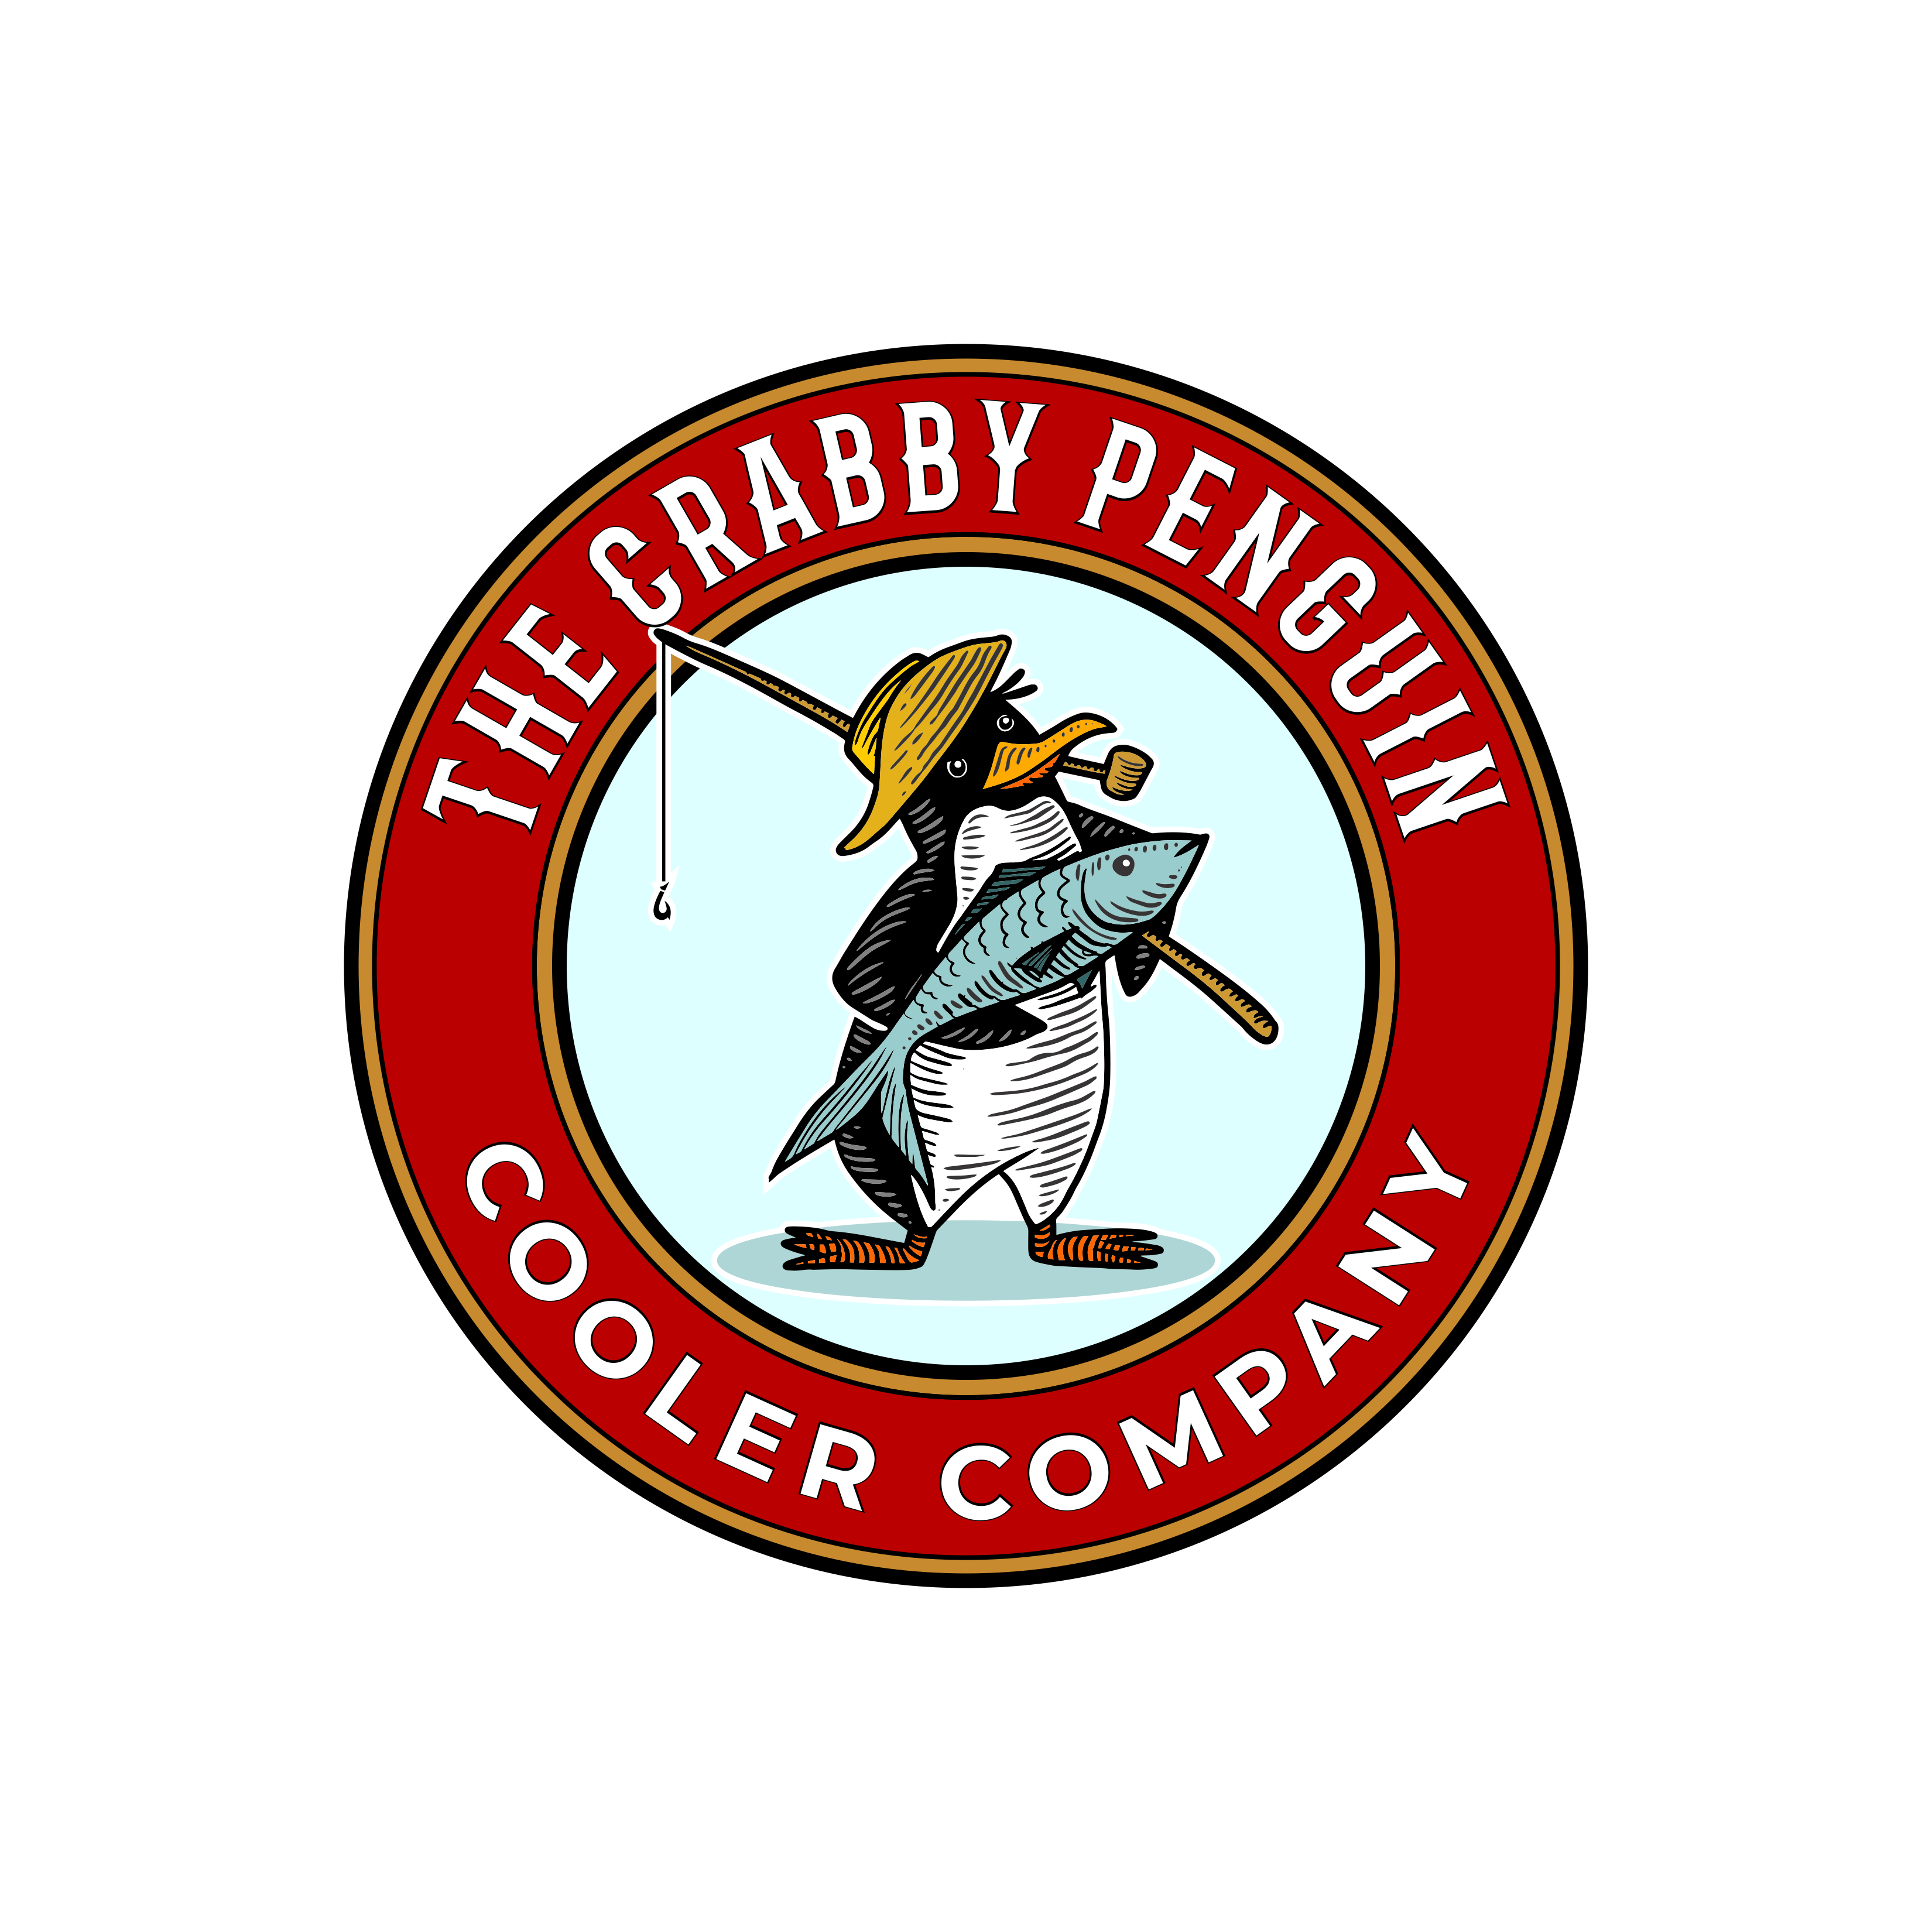 The Crabby Penguin Cooler Company